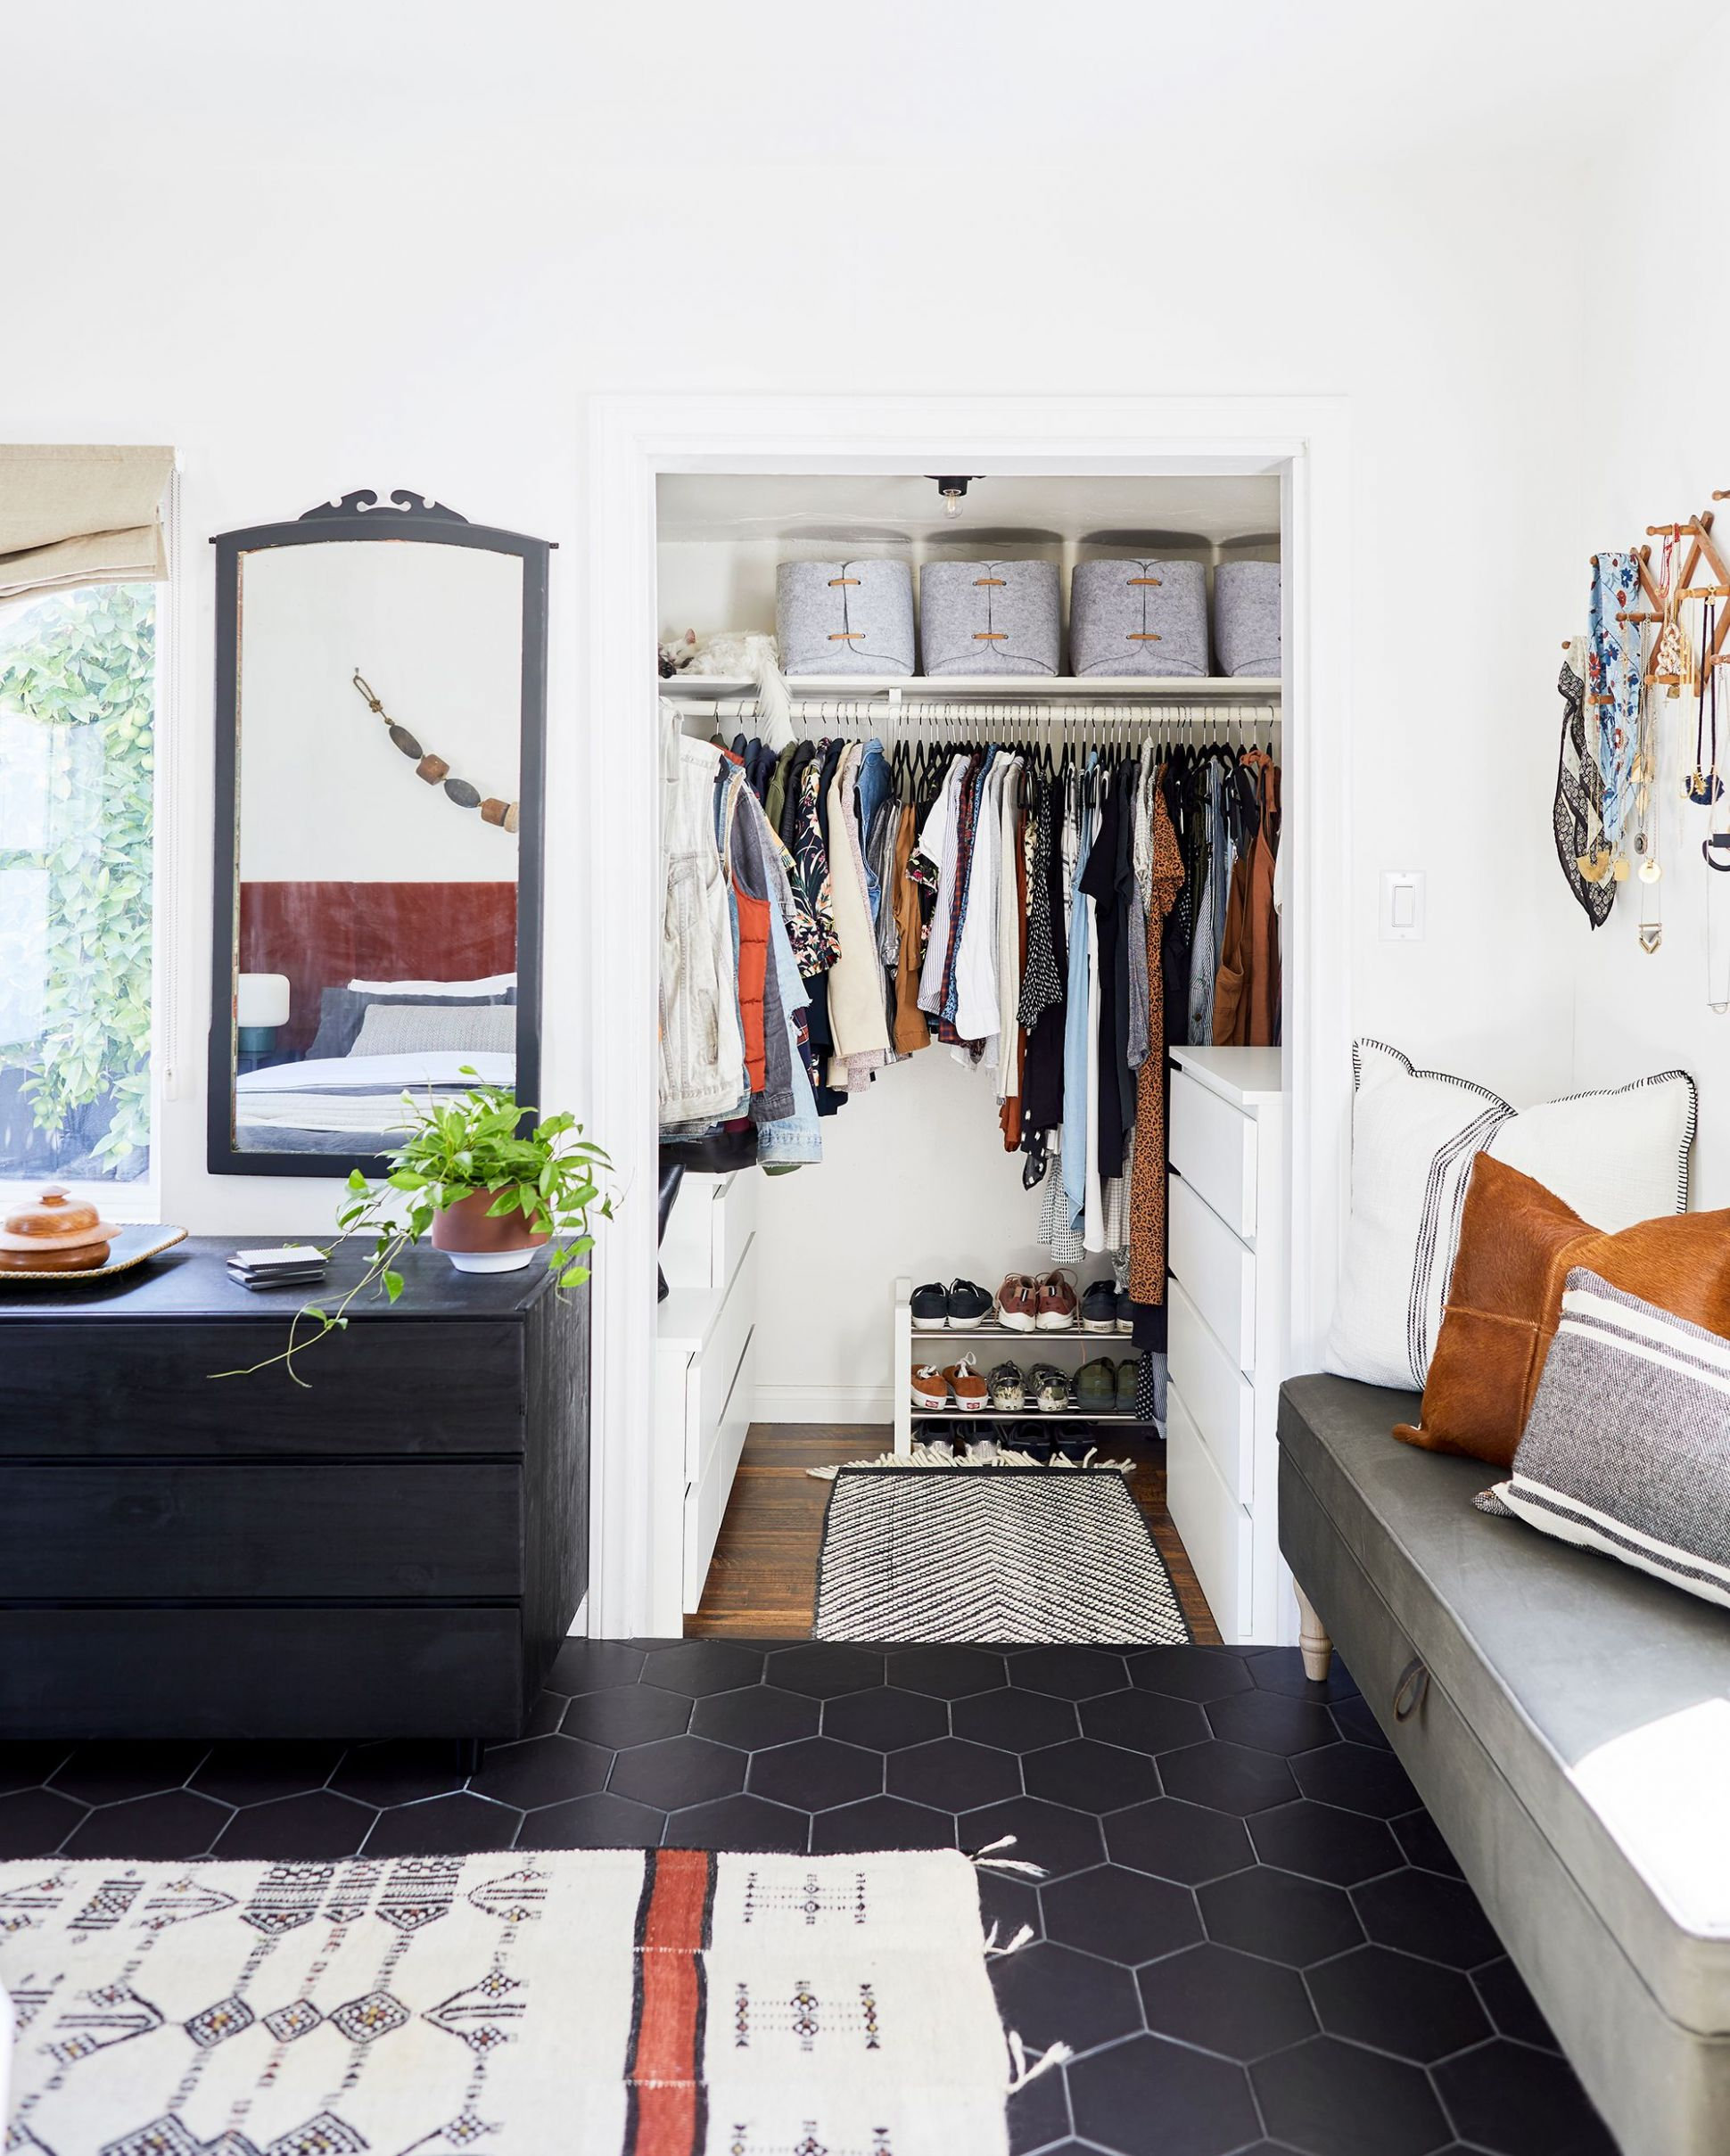 12 Best Small Closet Organization Ideas - Storage Tip for Small ..